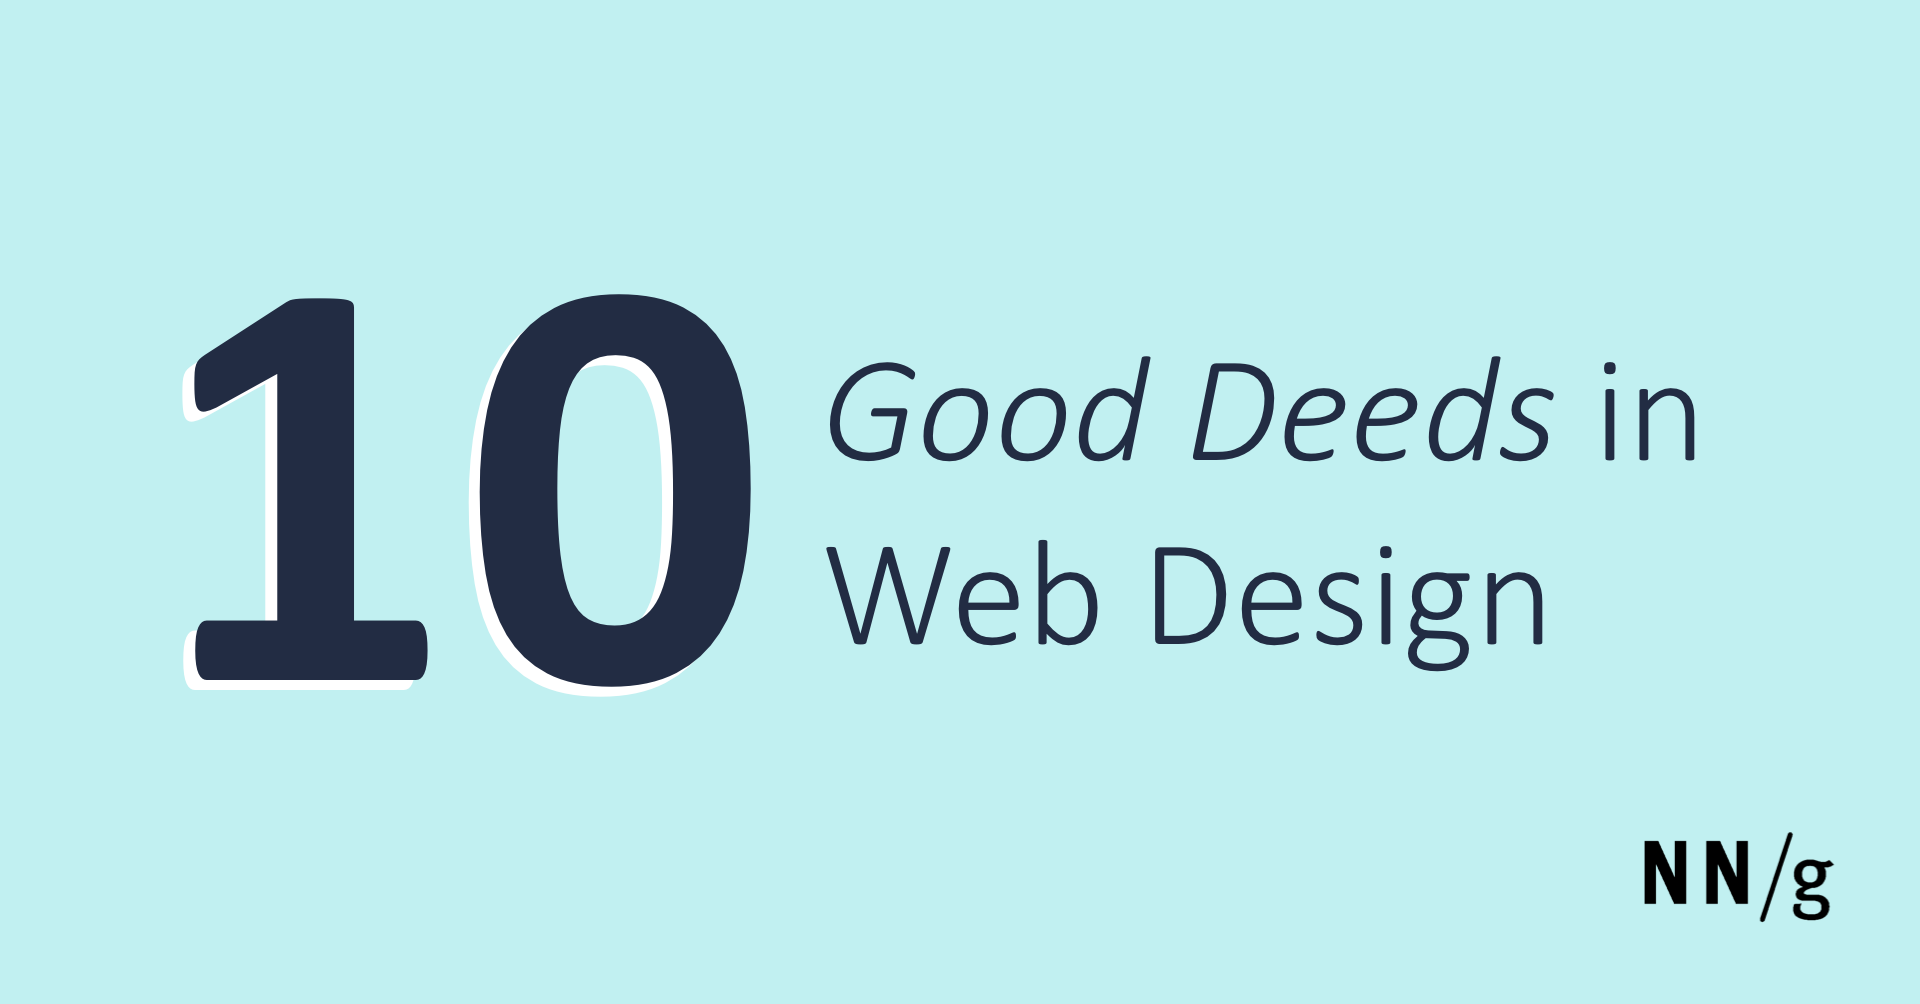 10 Good Deeds in Web Design